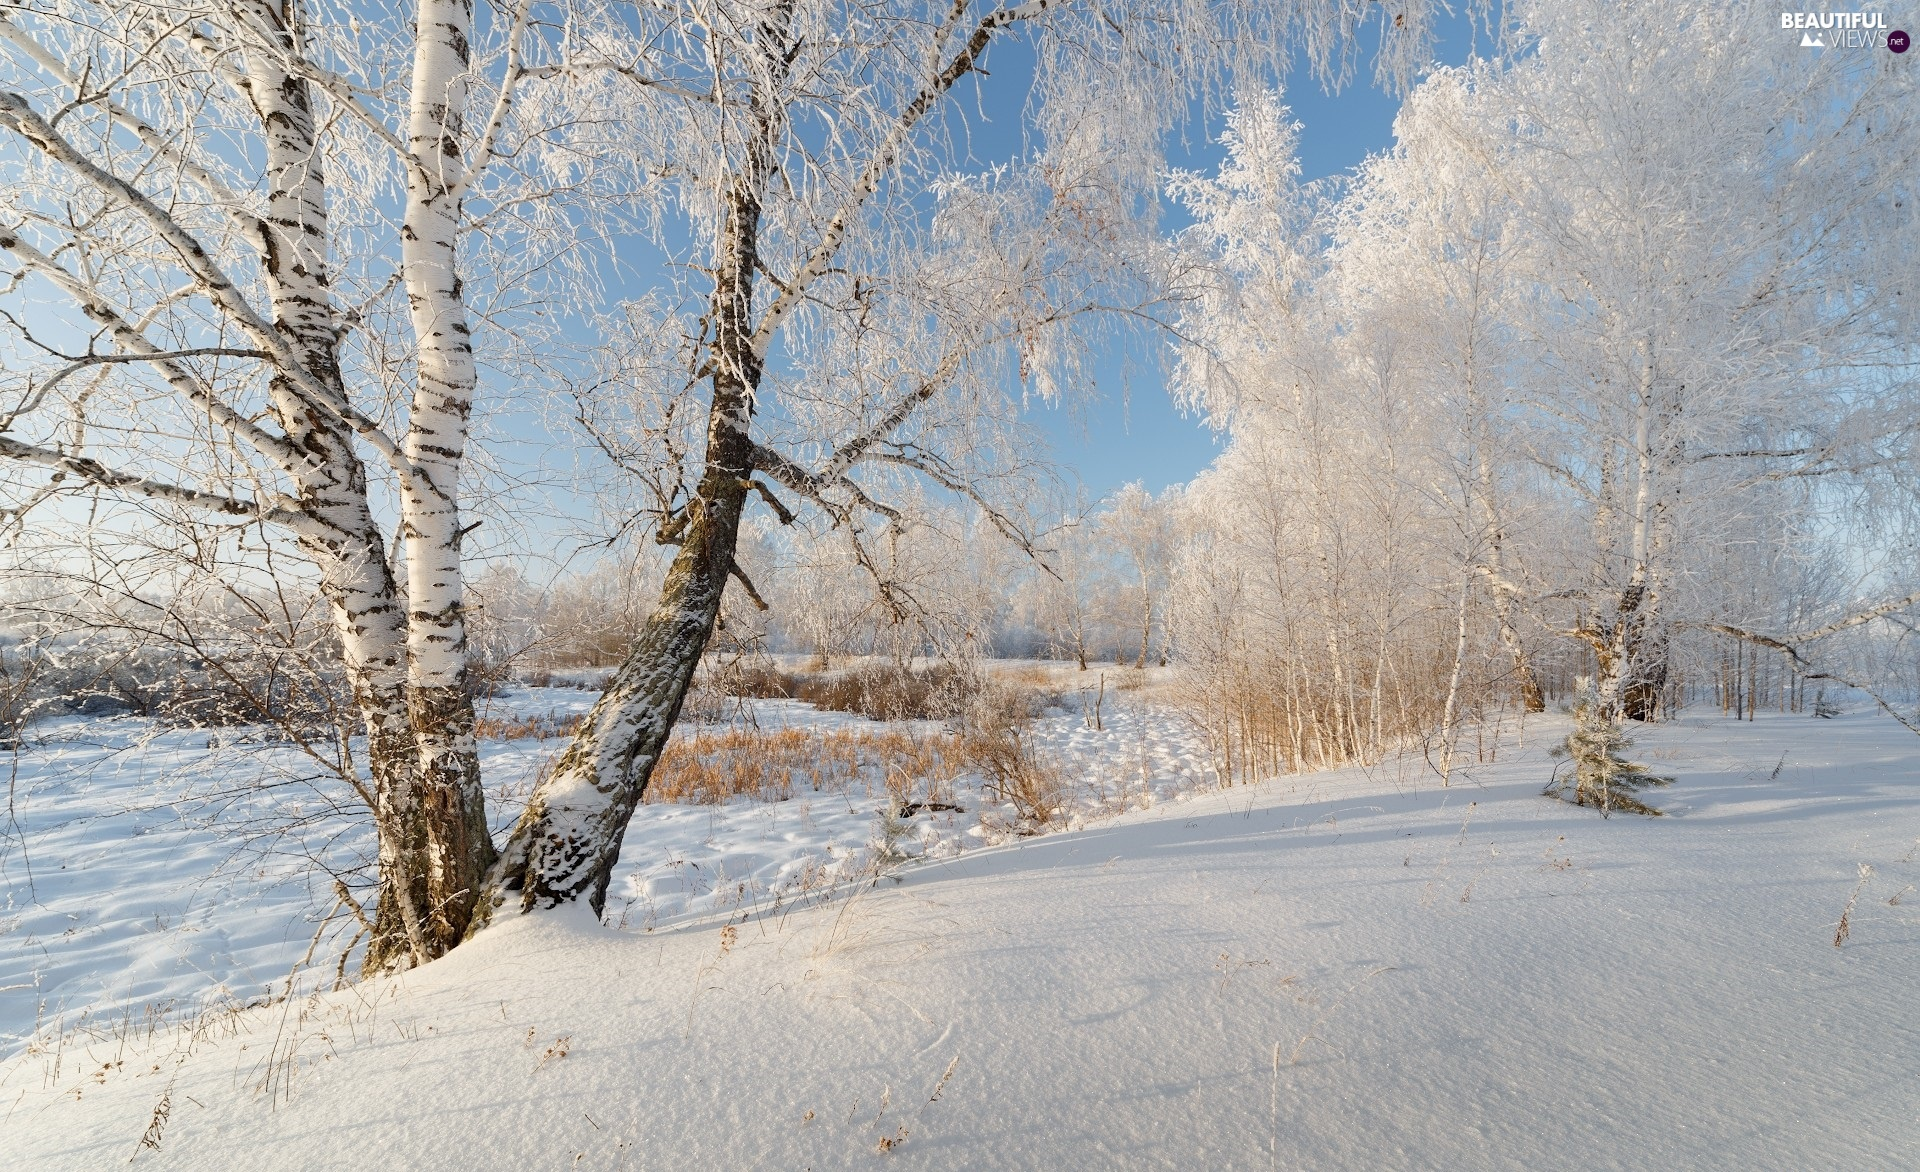 viewes, birch, Snowy, trees, winter